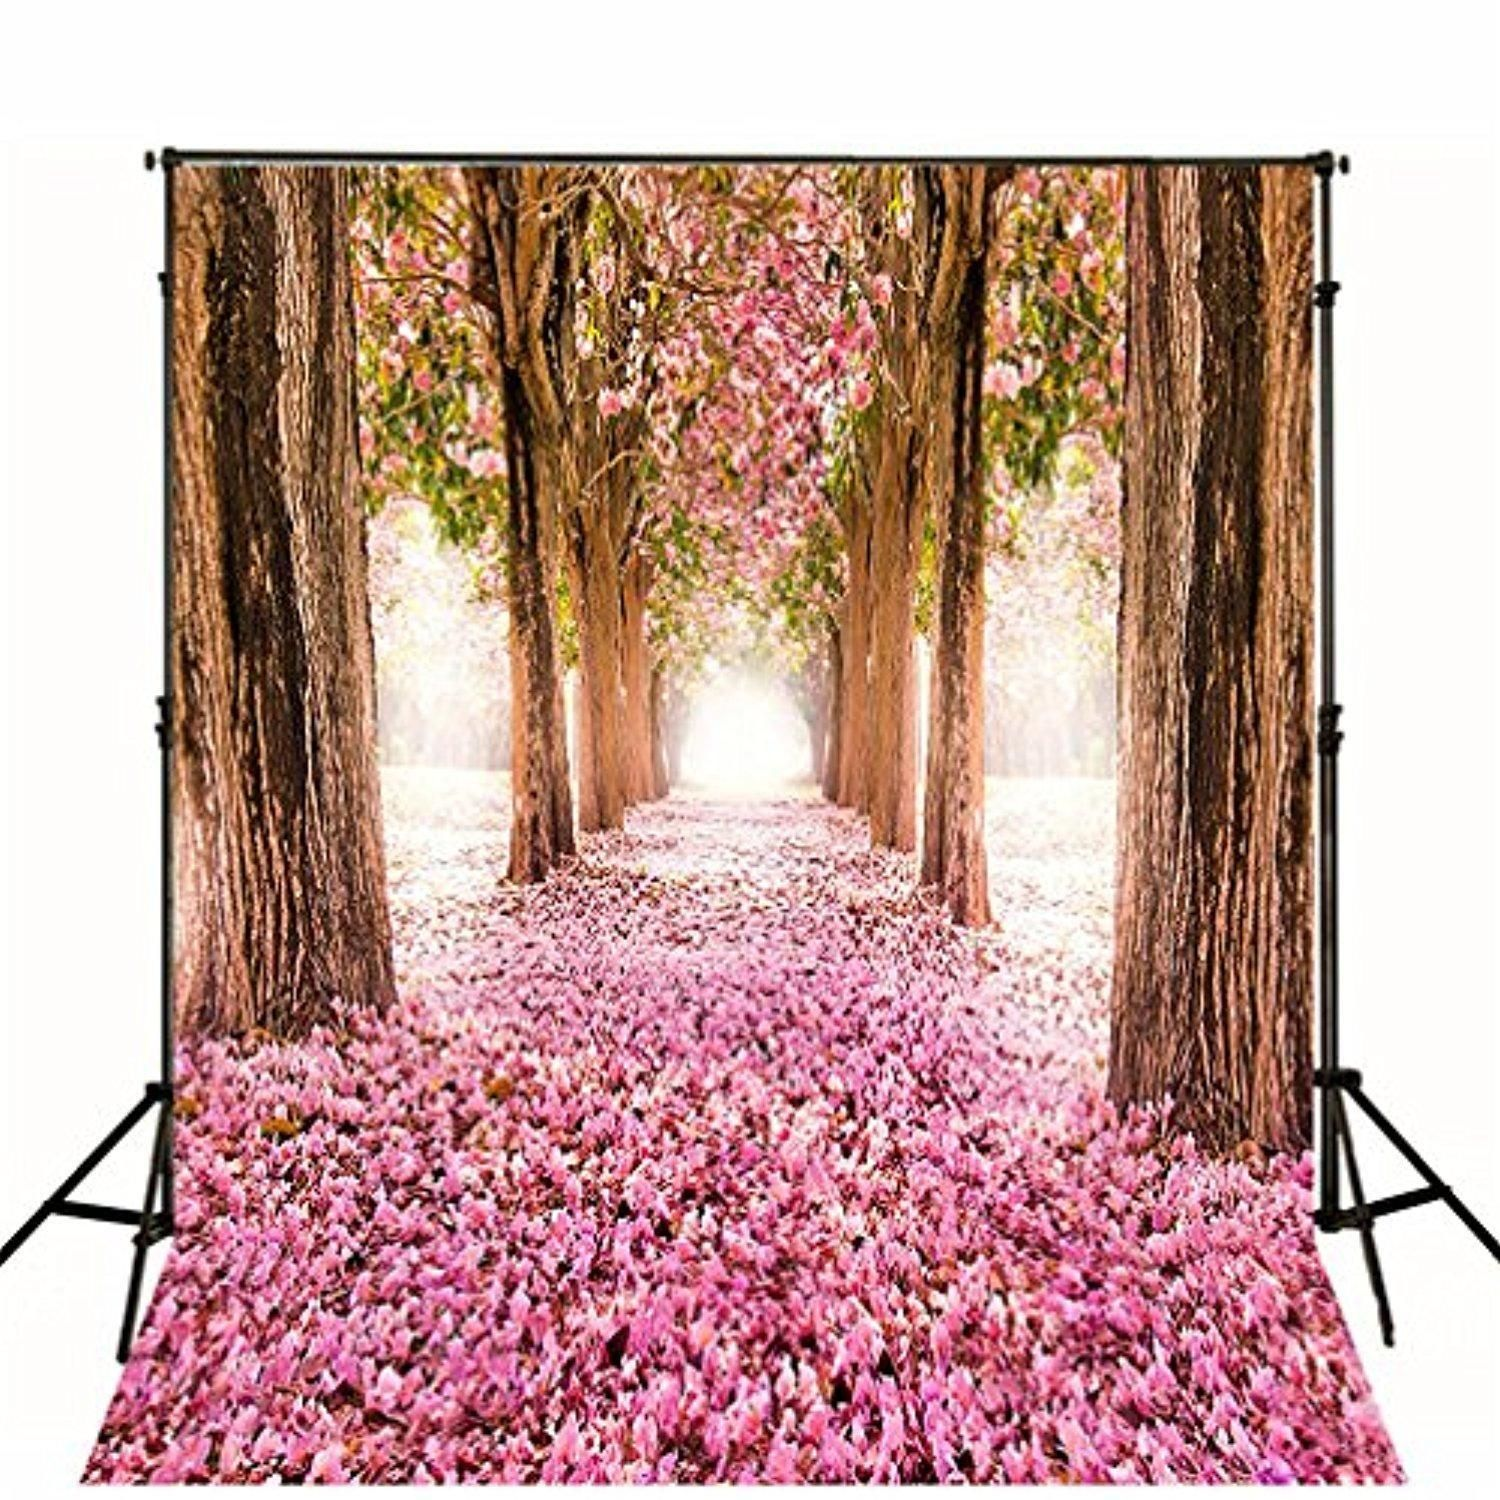 10x10 Backdrops For Photography Nature Spring Pink Flowers Wood Tree Scenic Vin Pink Flowers Photography Wedding Photo Booth Props Beautiful Photography Nature